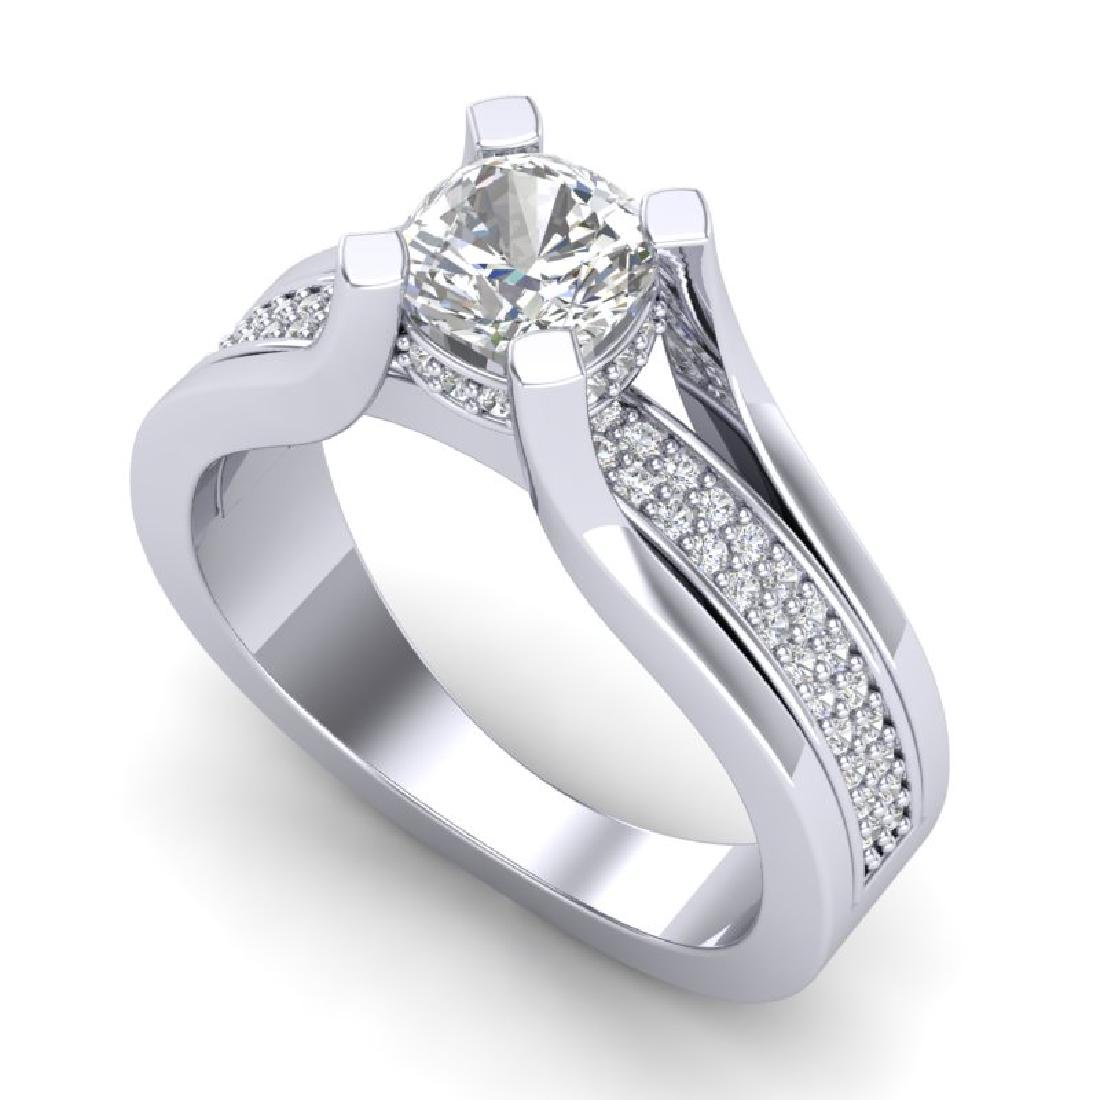 1.7 CTW Cushion VS/SI Diamond Solitaire Micro Pave Ring